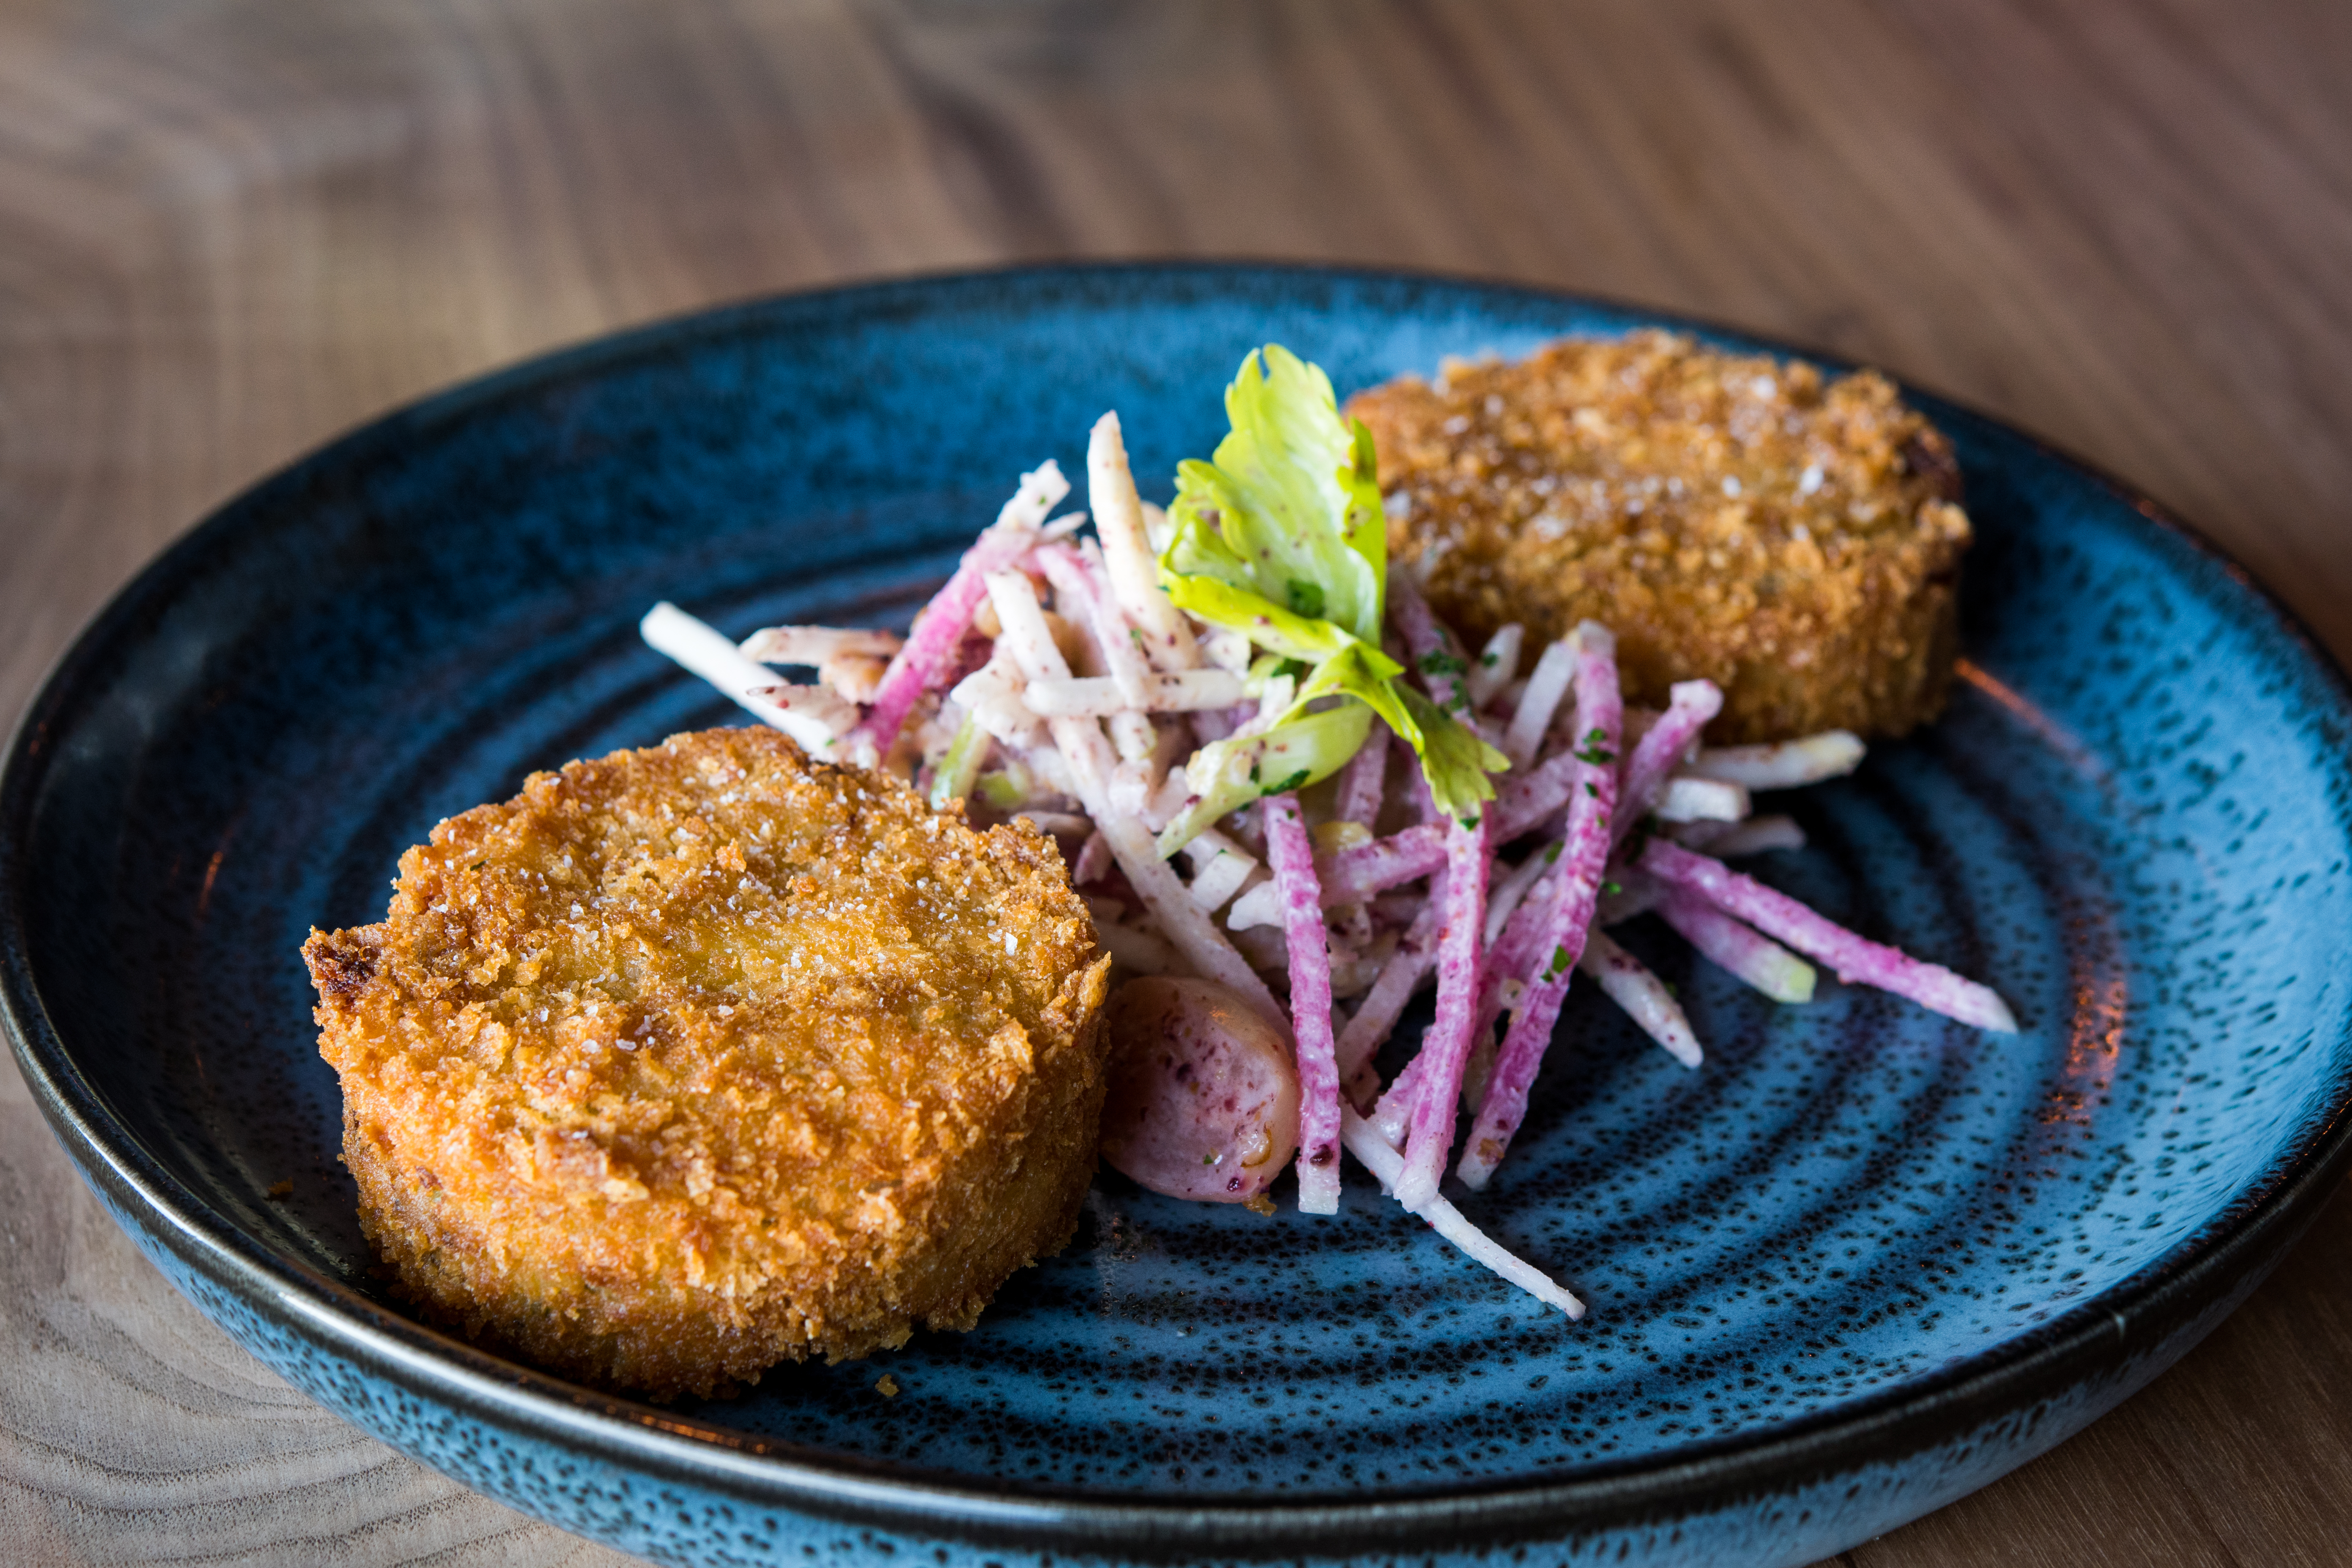 Crab Cakes with truffled celery, green apples and pickled grapes (Image courtesy of Fire Vine/Aerlume).